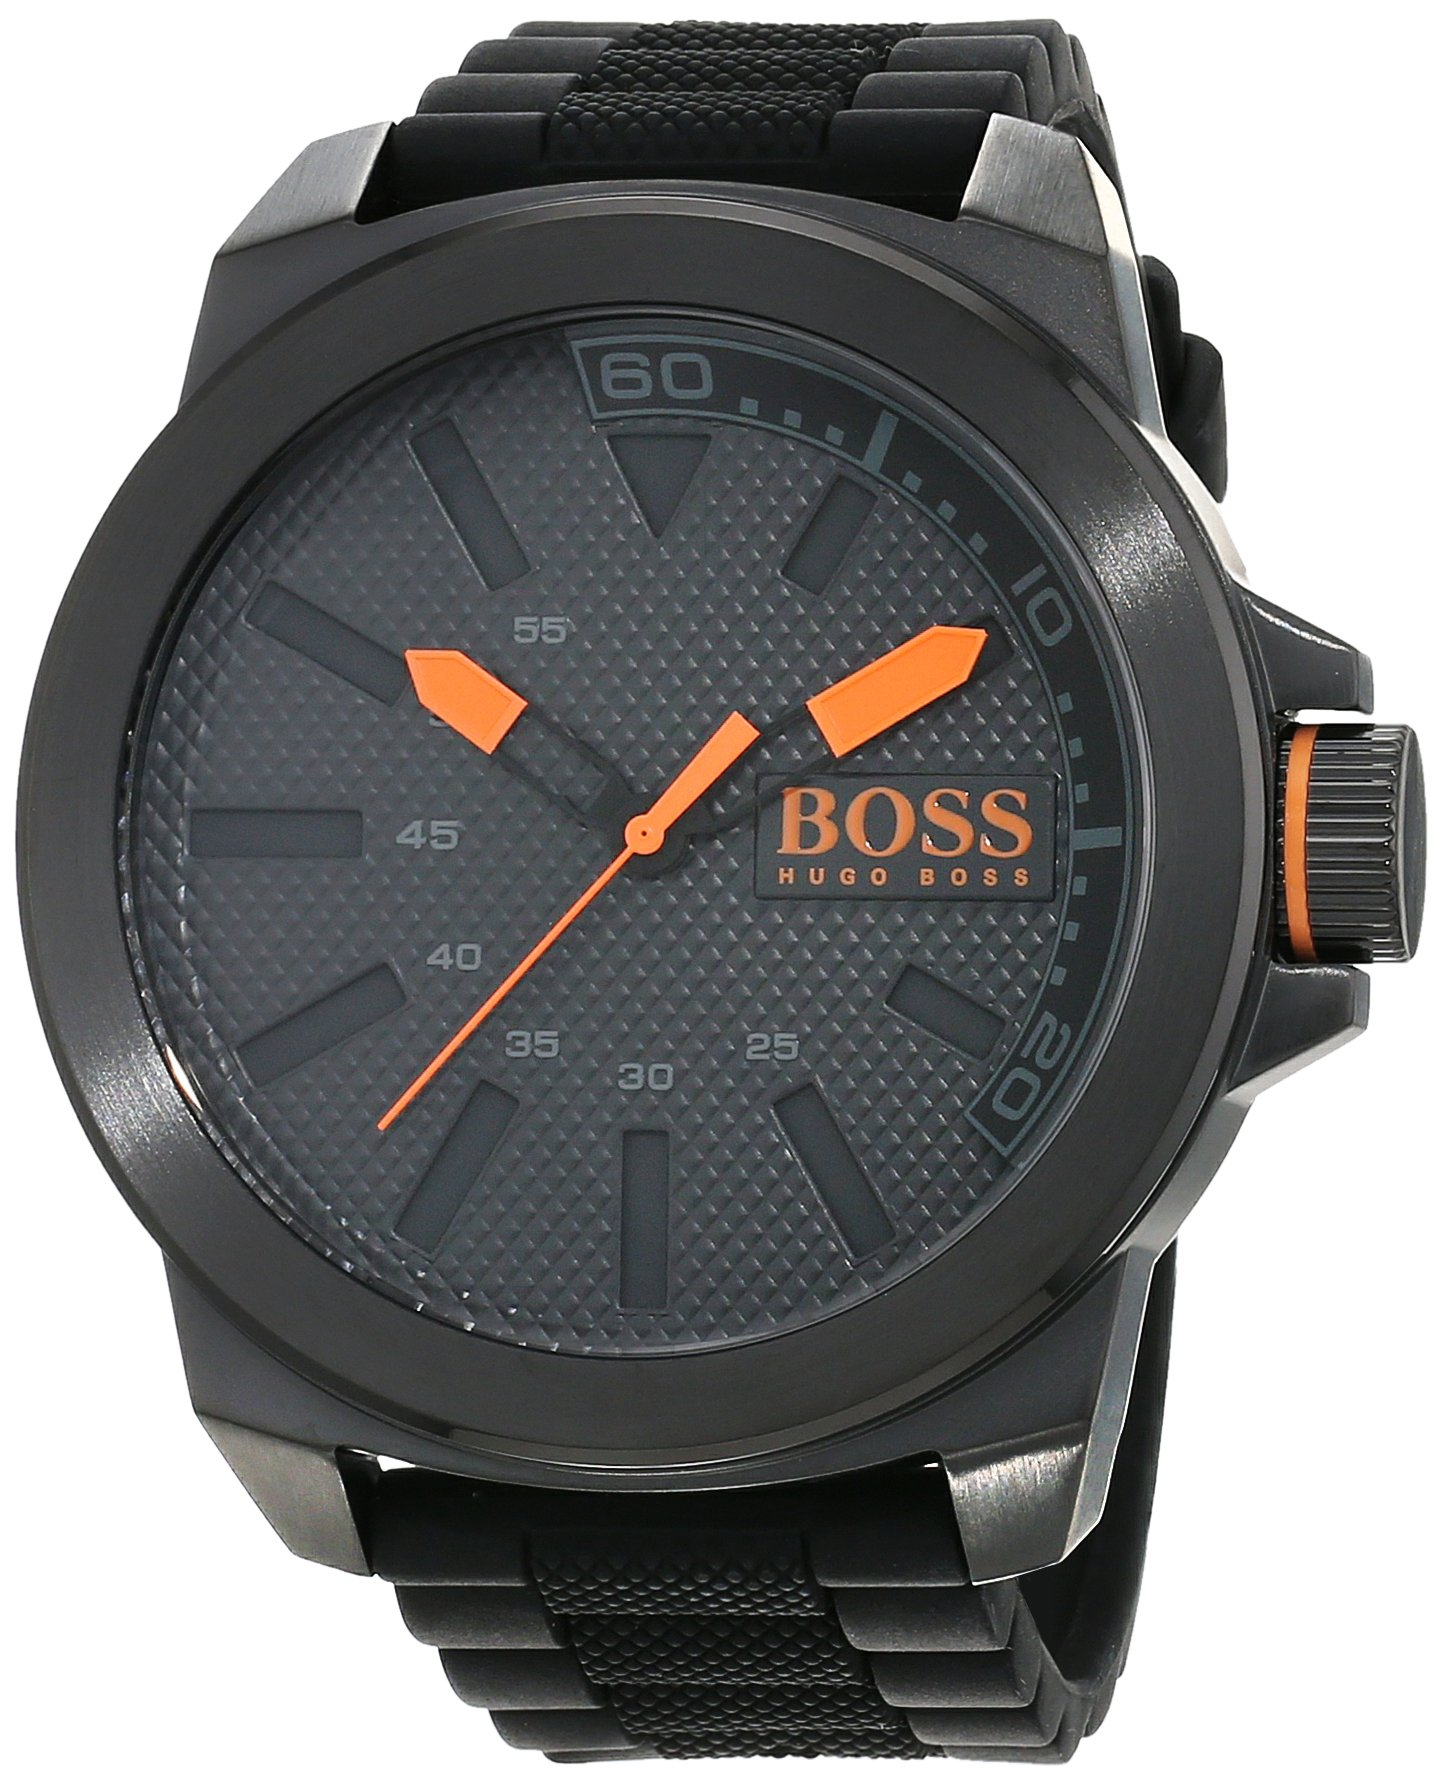 Hugo-Boss-Orange-New-York-Herren-Armbanduhr-Quartz-mit-schwarzem-Silikon-Armband-1513004